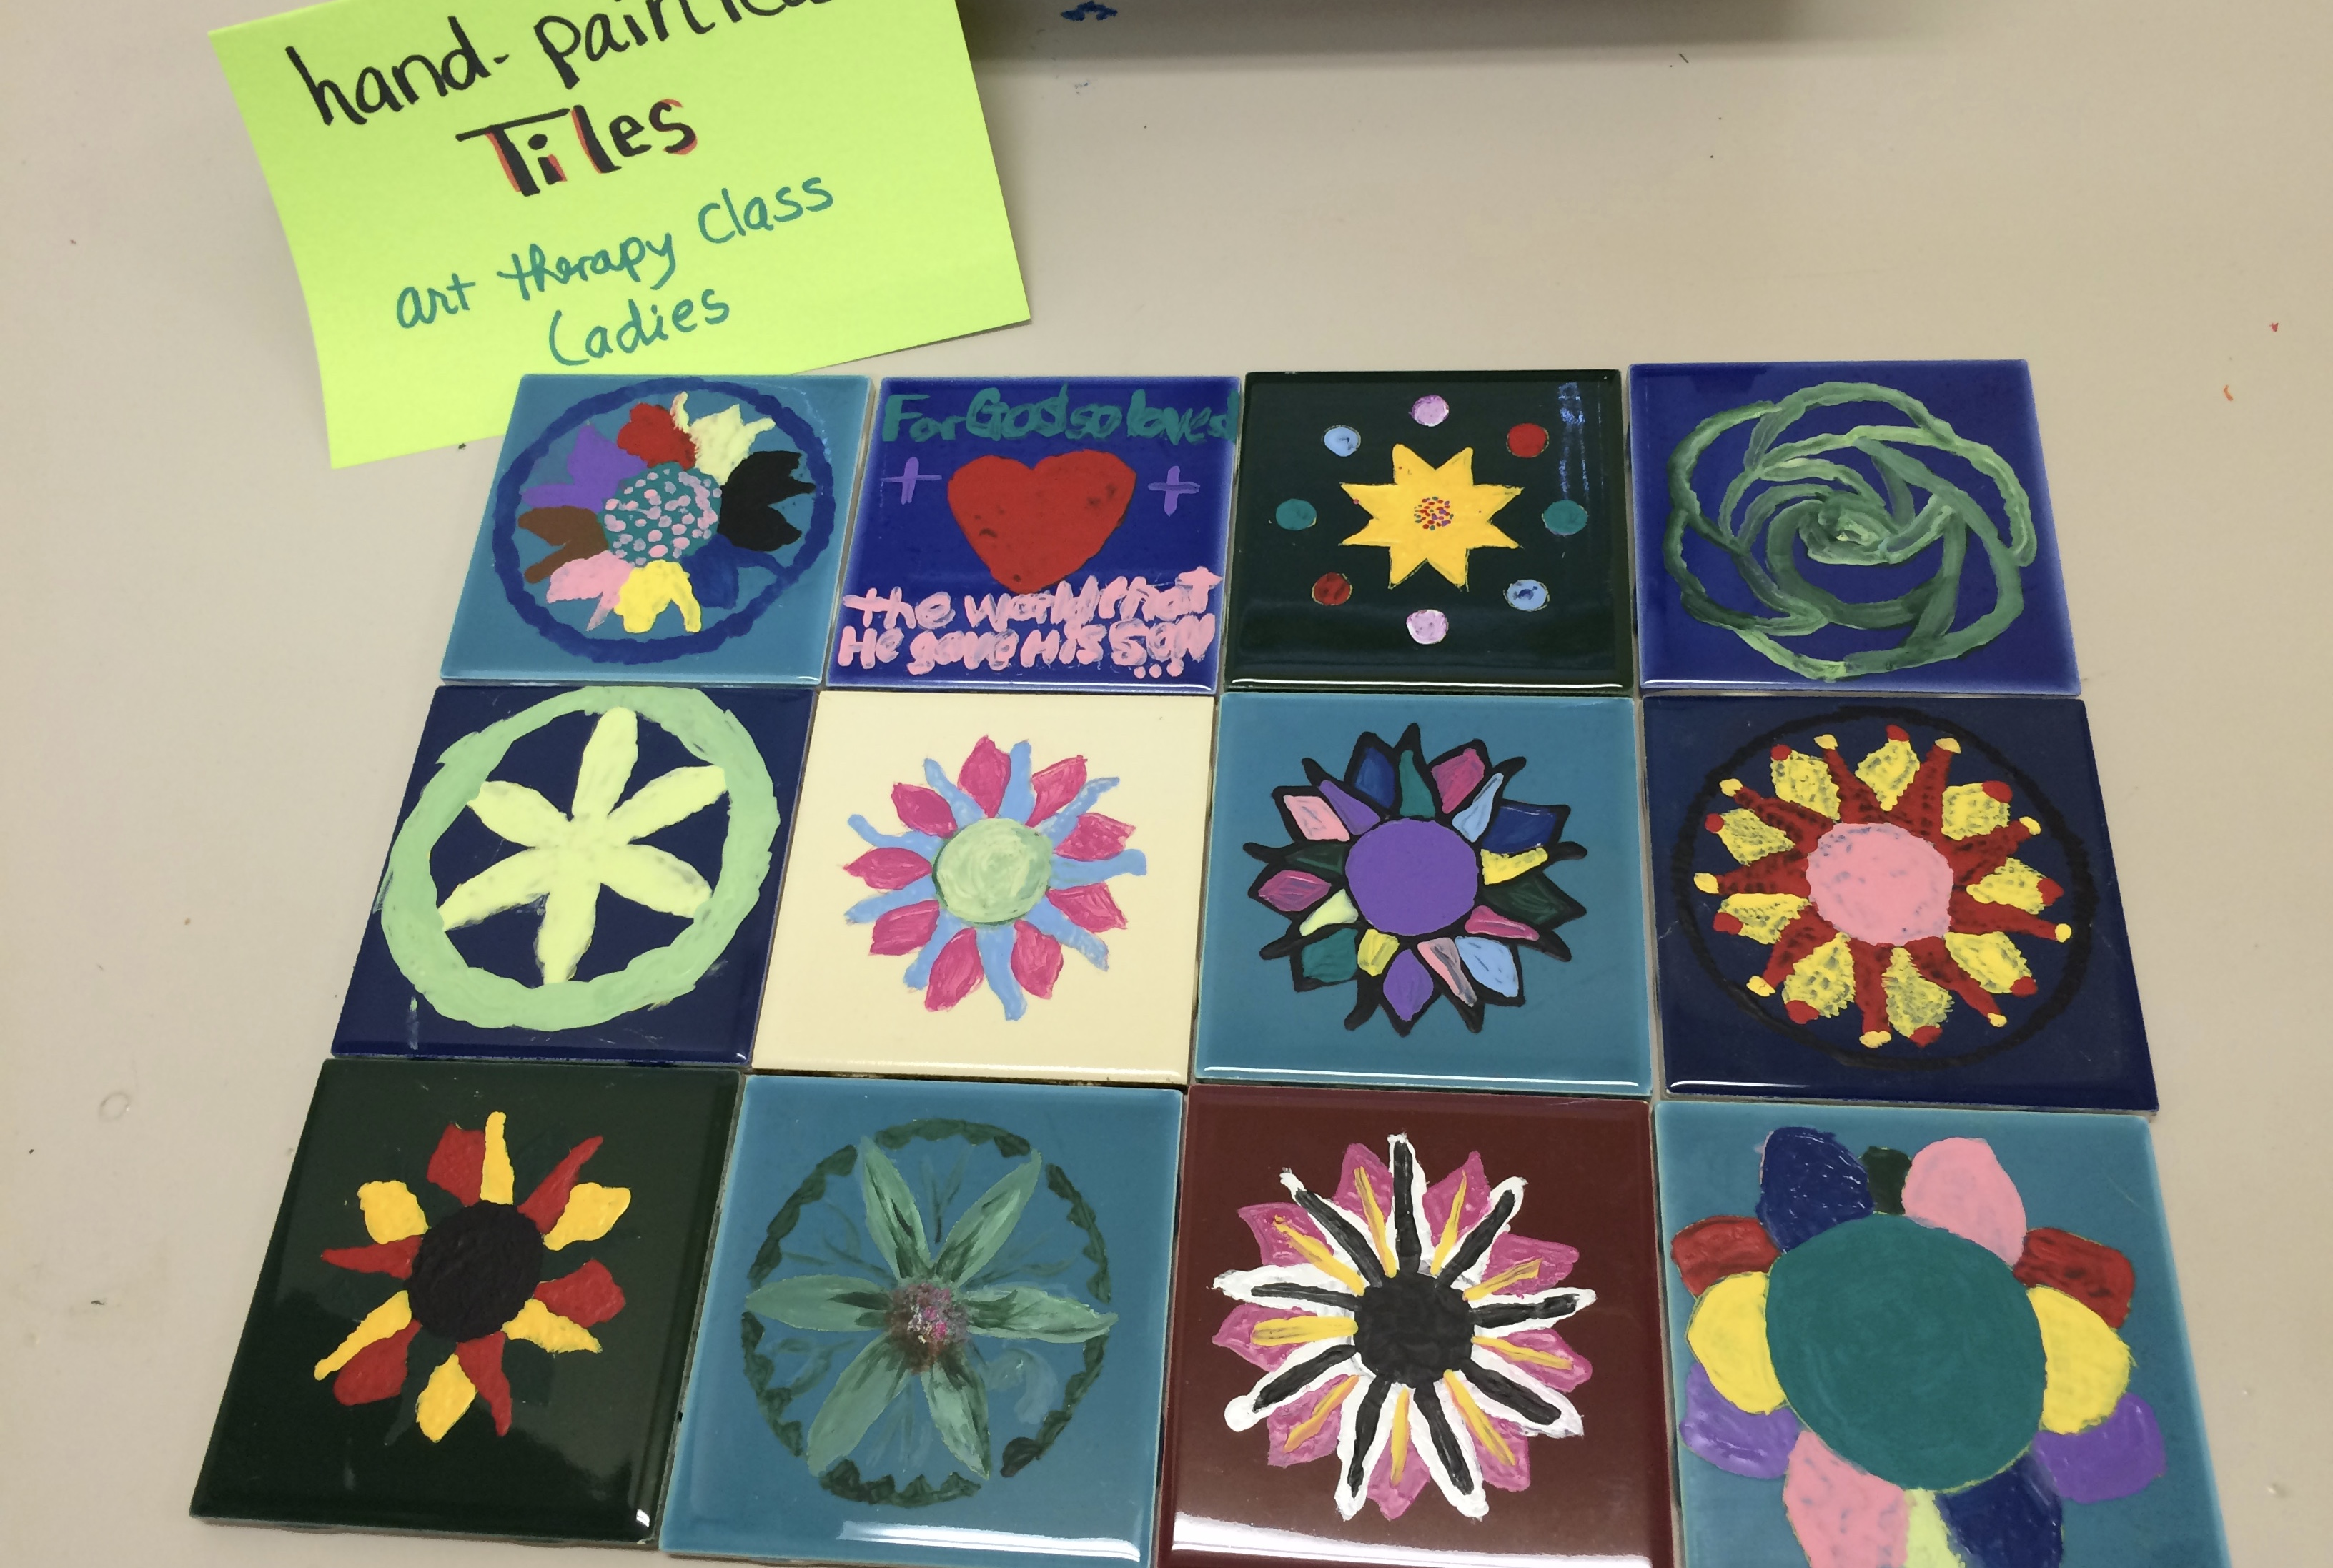 Hand painted tiles done in art class